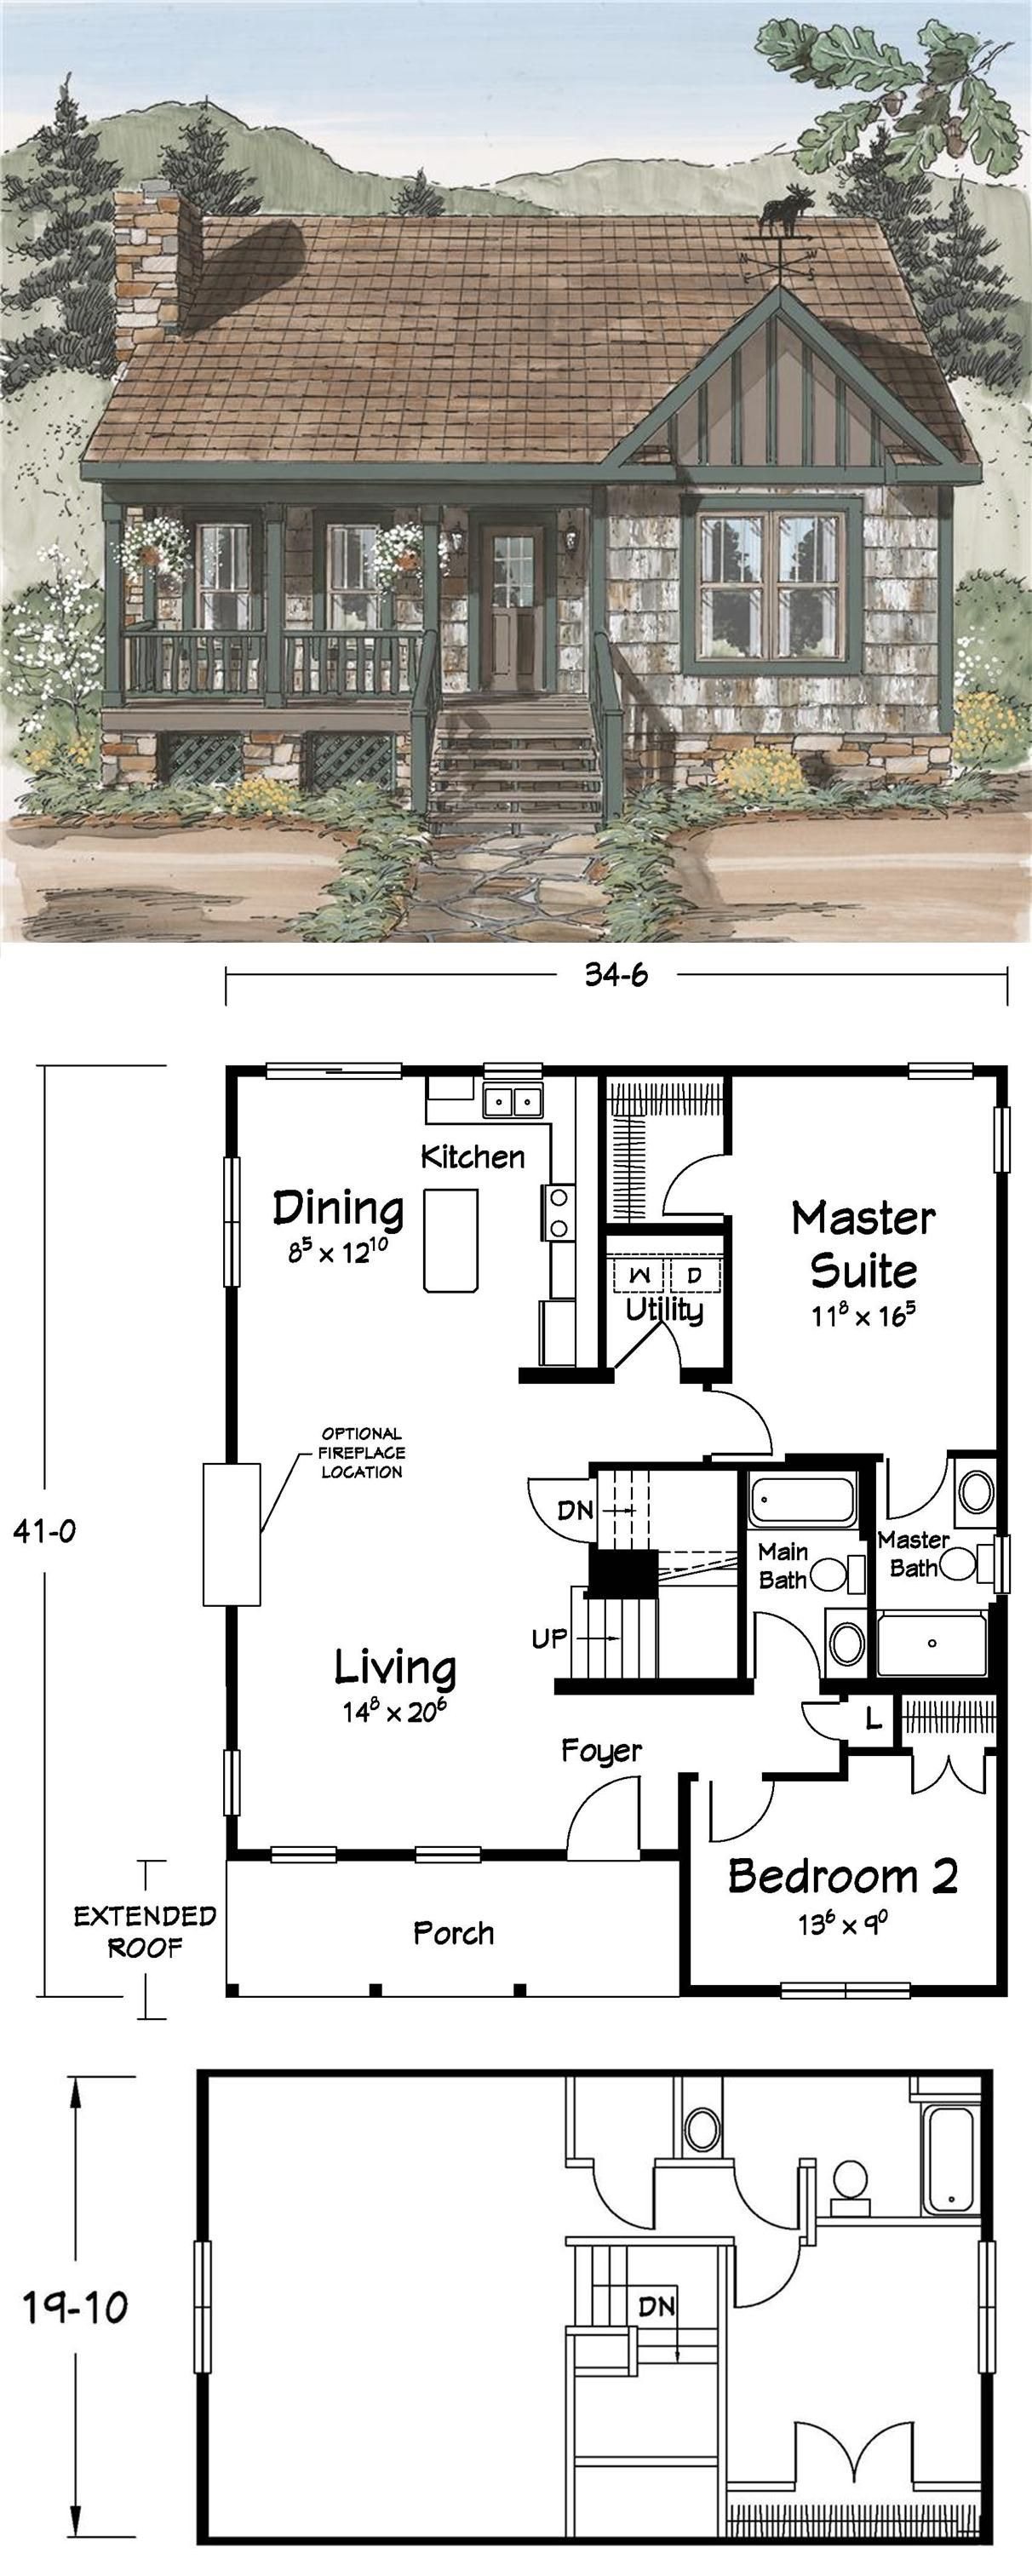 Small House Plans with Basements Beautiful Cabin or Small House